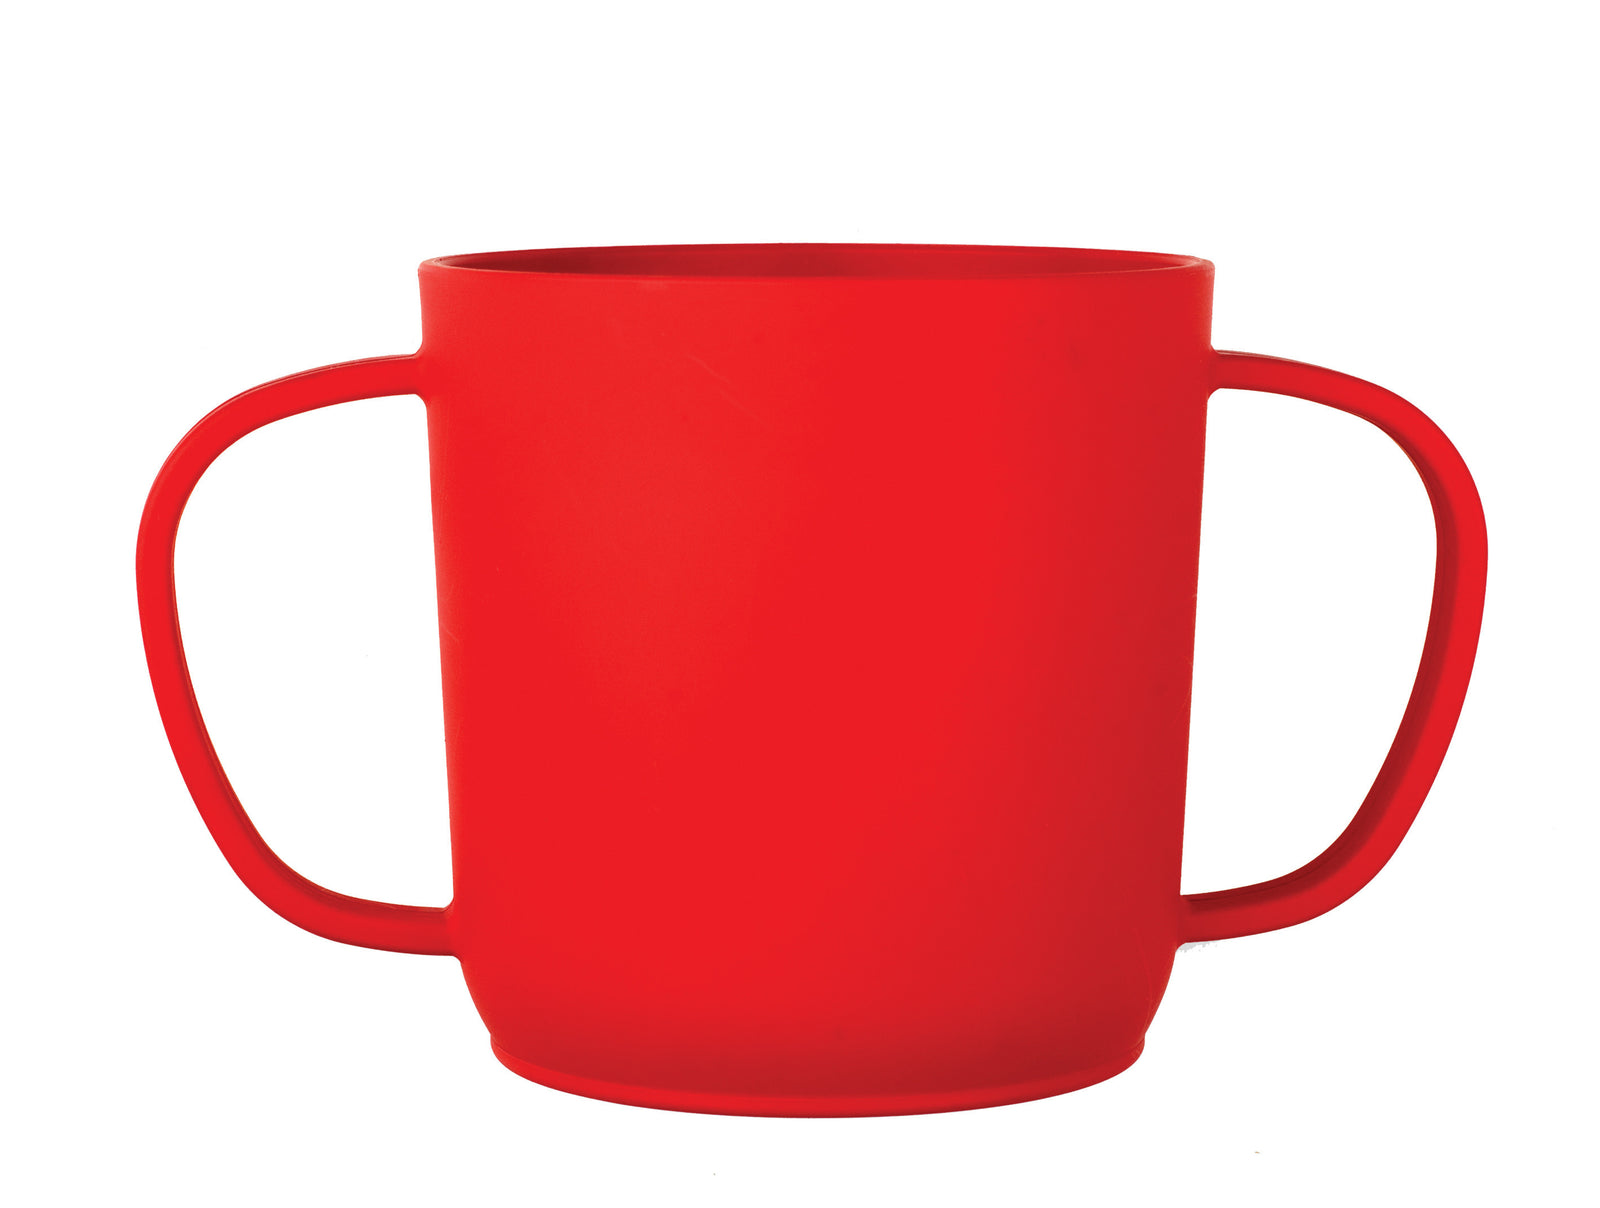 JJ Rabbit® CUPPIES® transitional training cups in Piglet Wet Coral color  (side view)